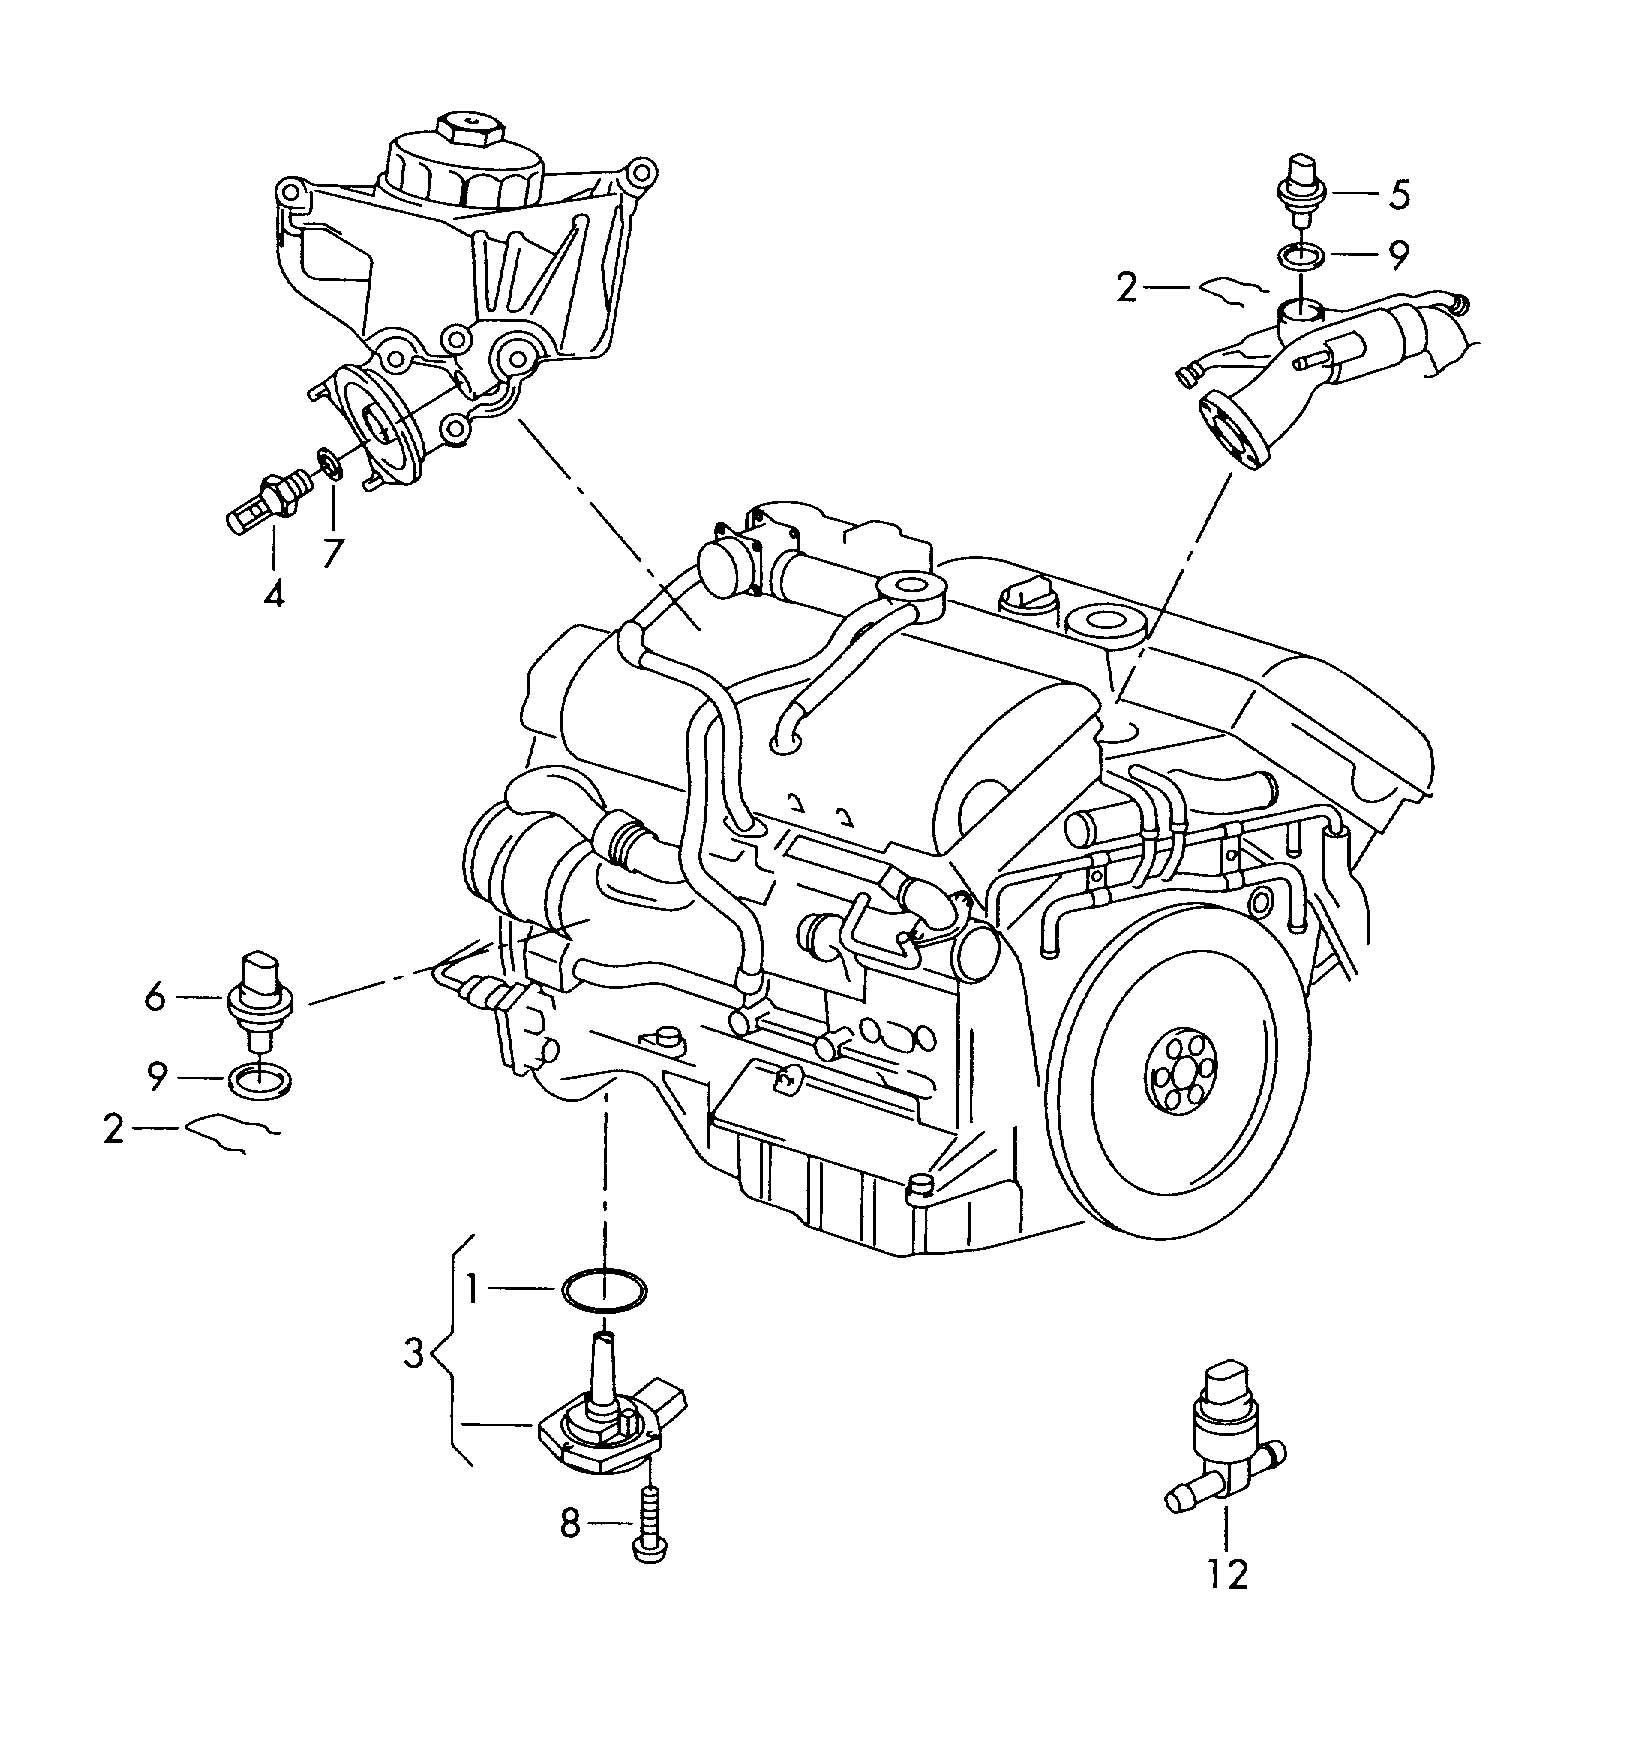 Volkswagen Touareg Switches And Senders On Engine And